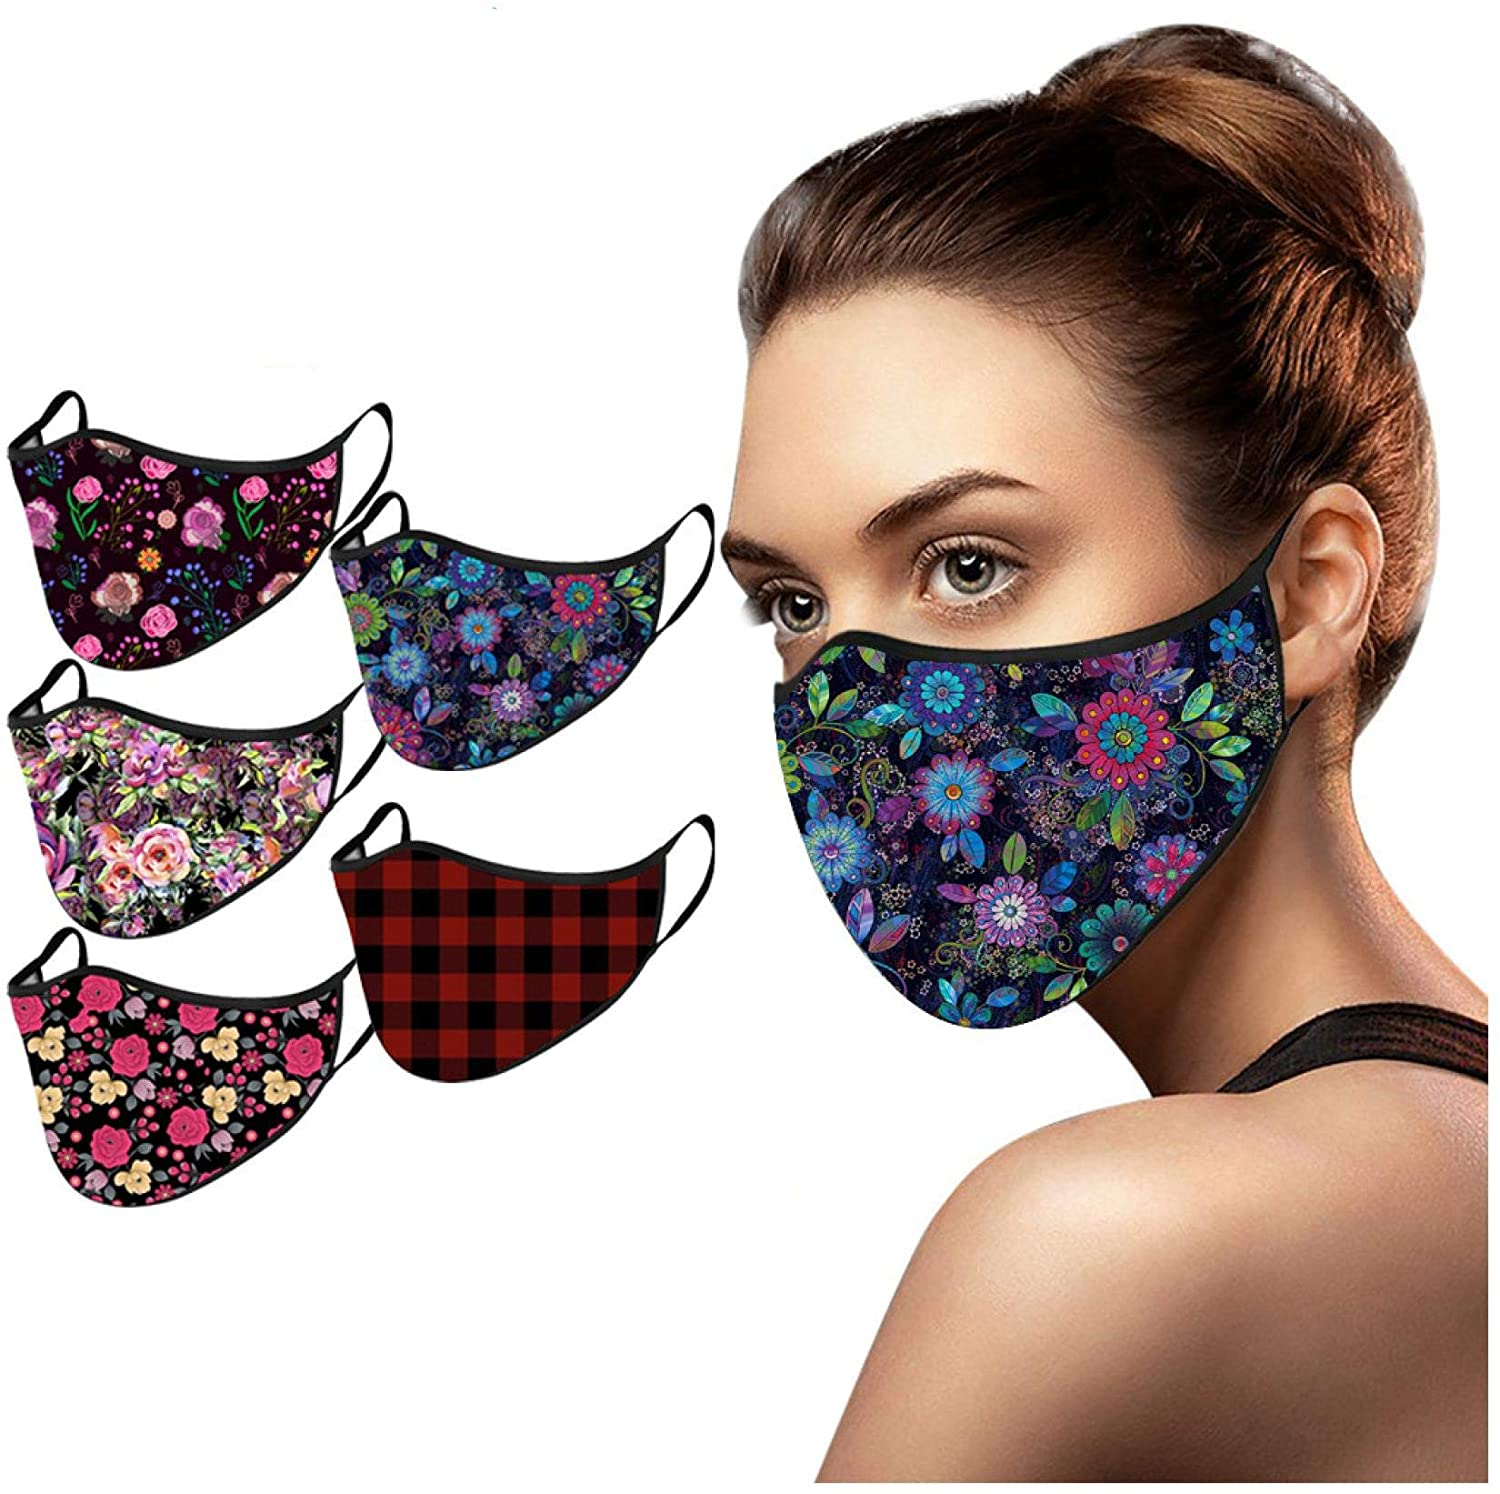 Adult's Reusable Washable Face Bandanas for Women Men Comfortable with Print for Outdoor Office Running Cycling (5PC, B)